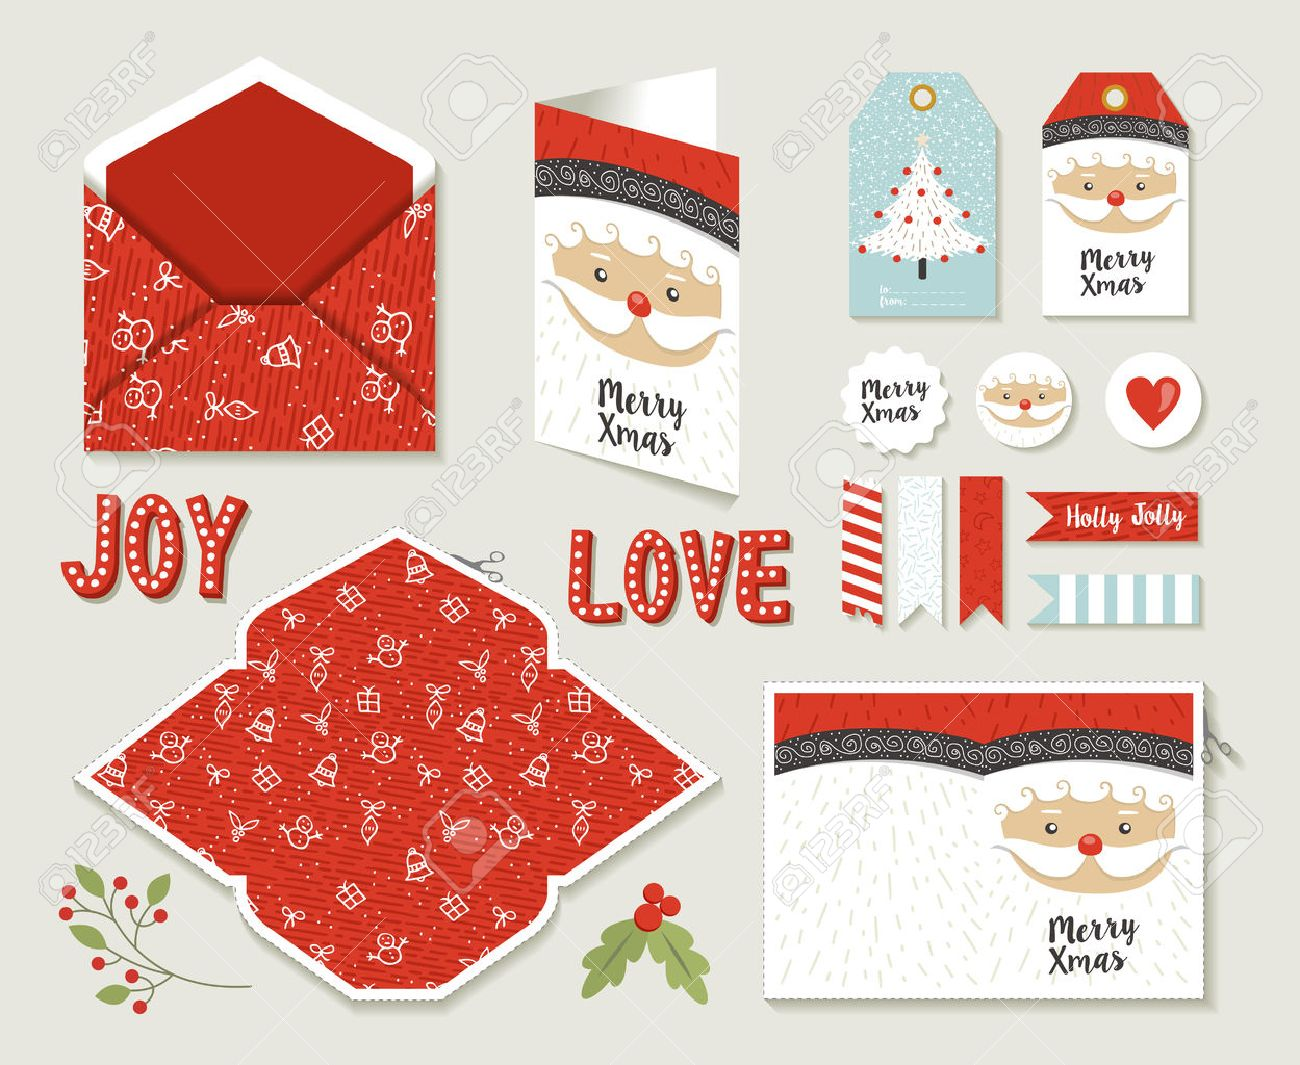 picture regarding Printable Christmas Envelopes referred to as Merry xmas mounted of printable Do-it-yourself envelope, tags and getaway..